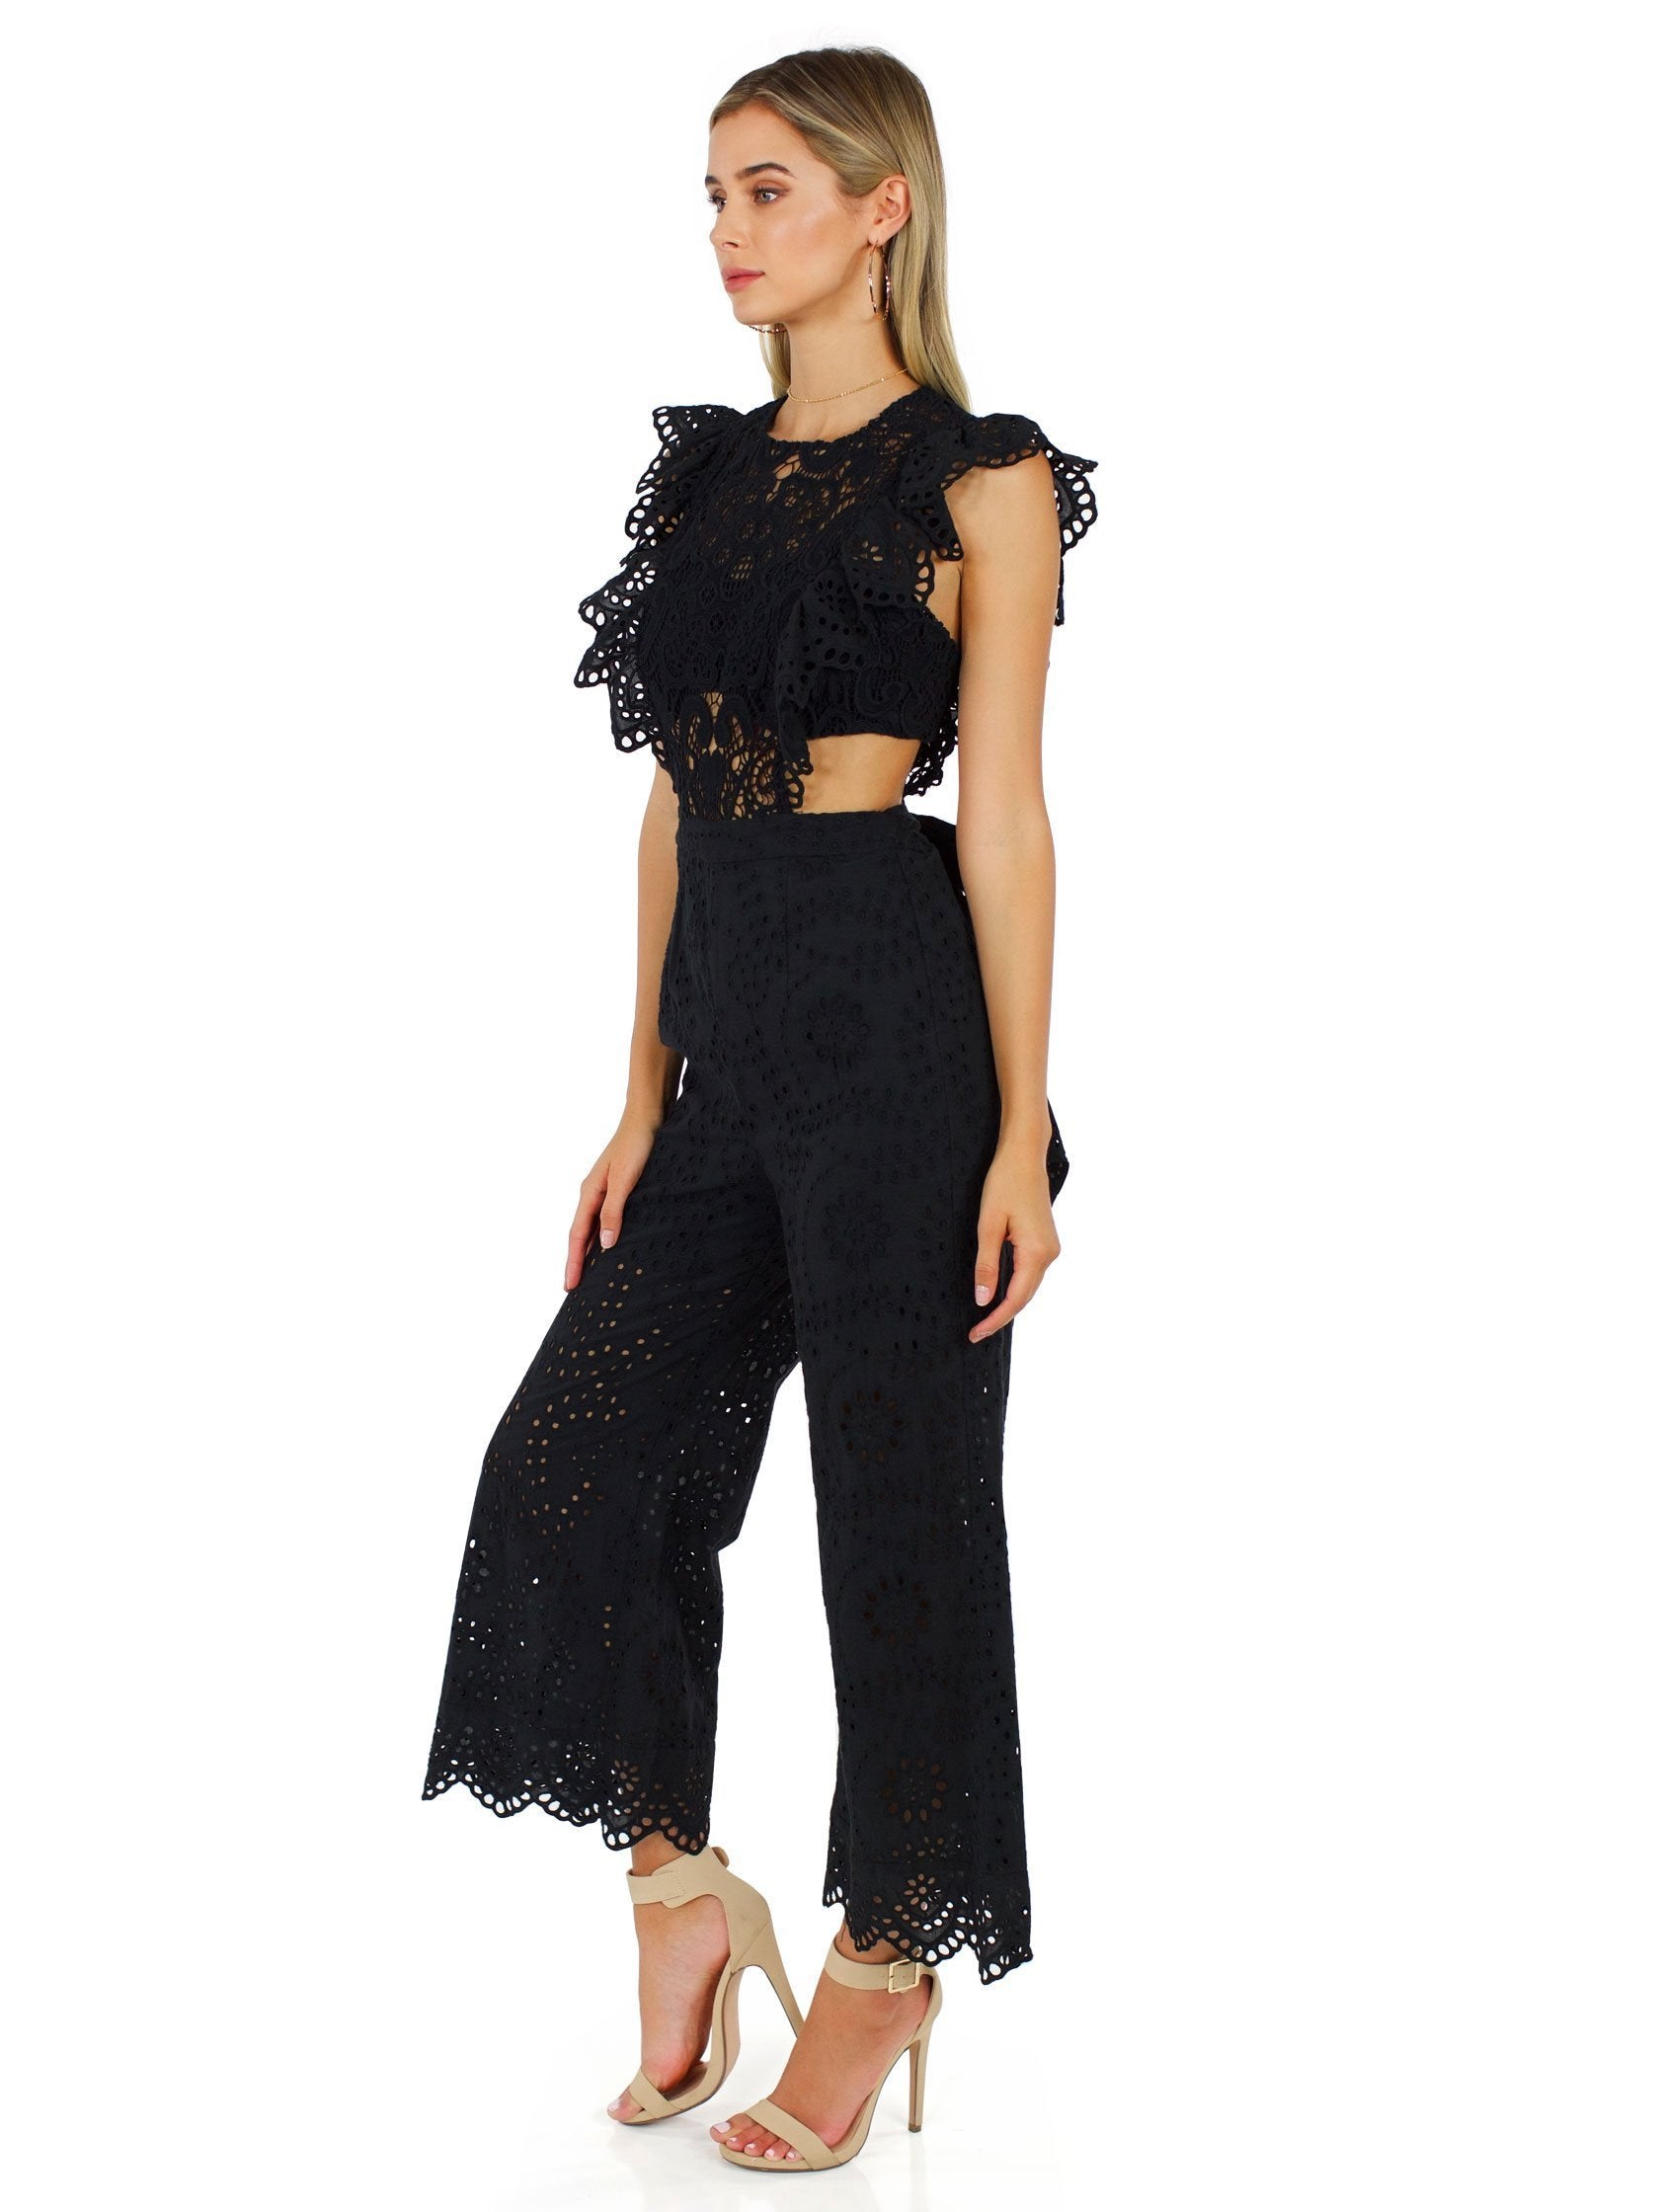 Woman wearing a jumpsuit rental from Nightcap Clothing called Eyelet Apron Jumpsuit